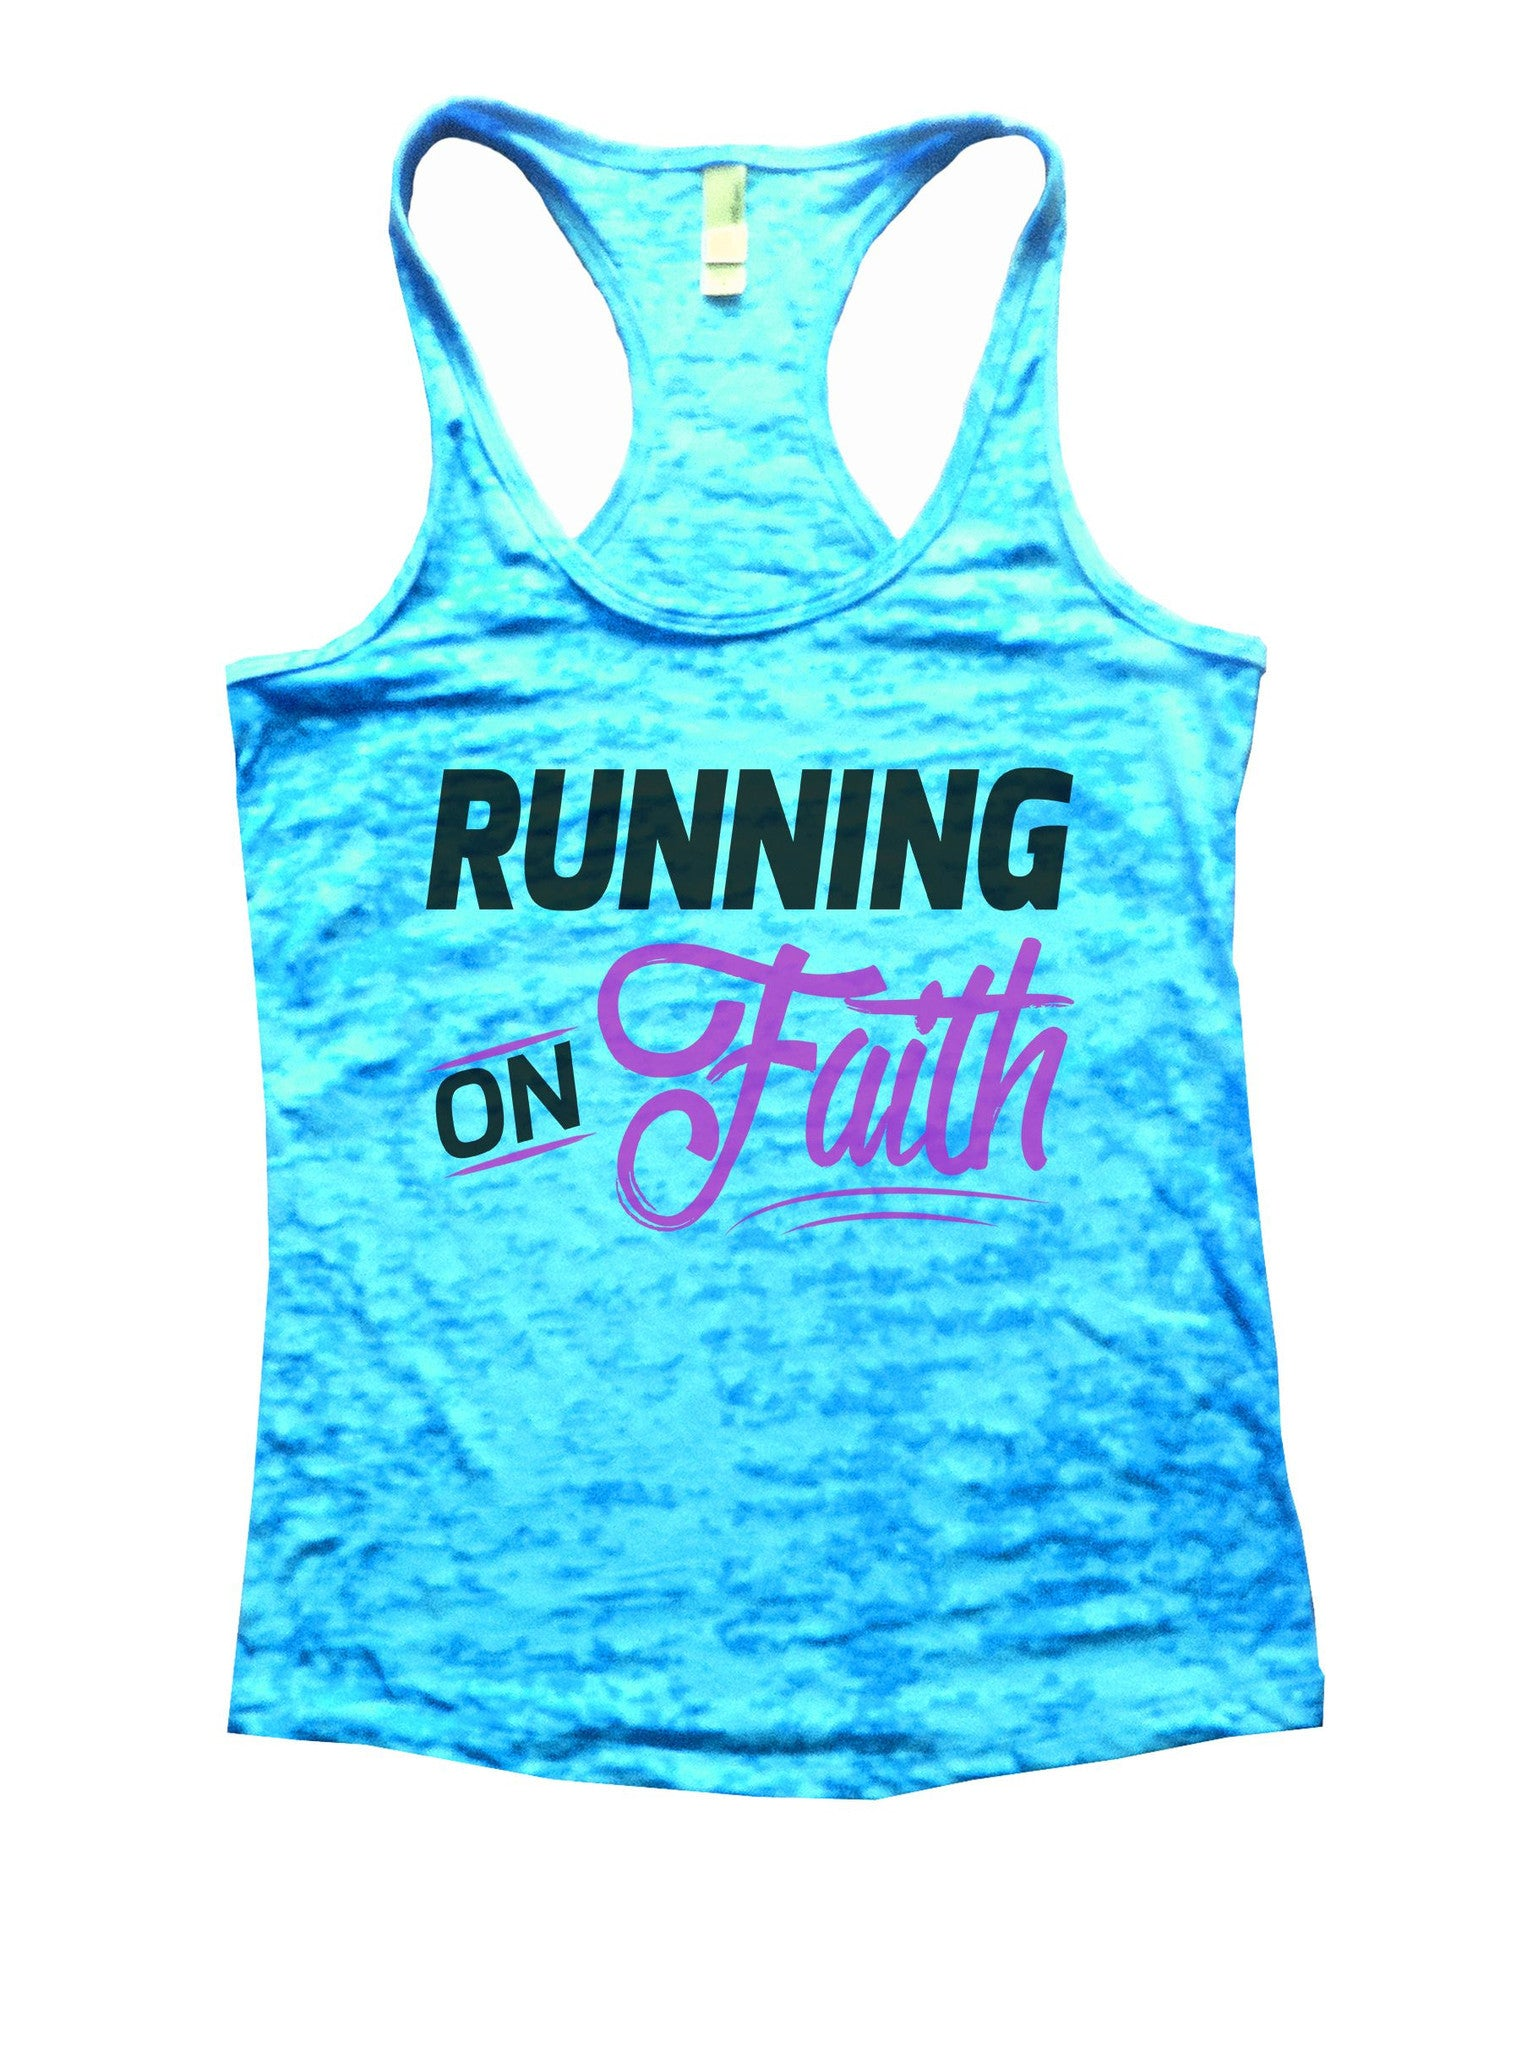 Running On Faith Burnout Tank Top By BurnoutTankTops.com - 1073 - Funny Shirts Tank Tops Burnouts and Triblends  - 4